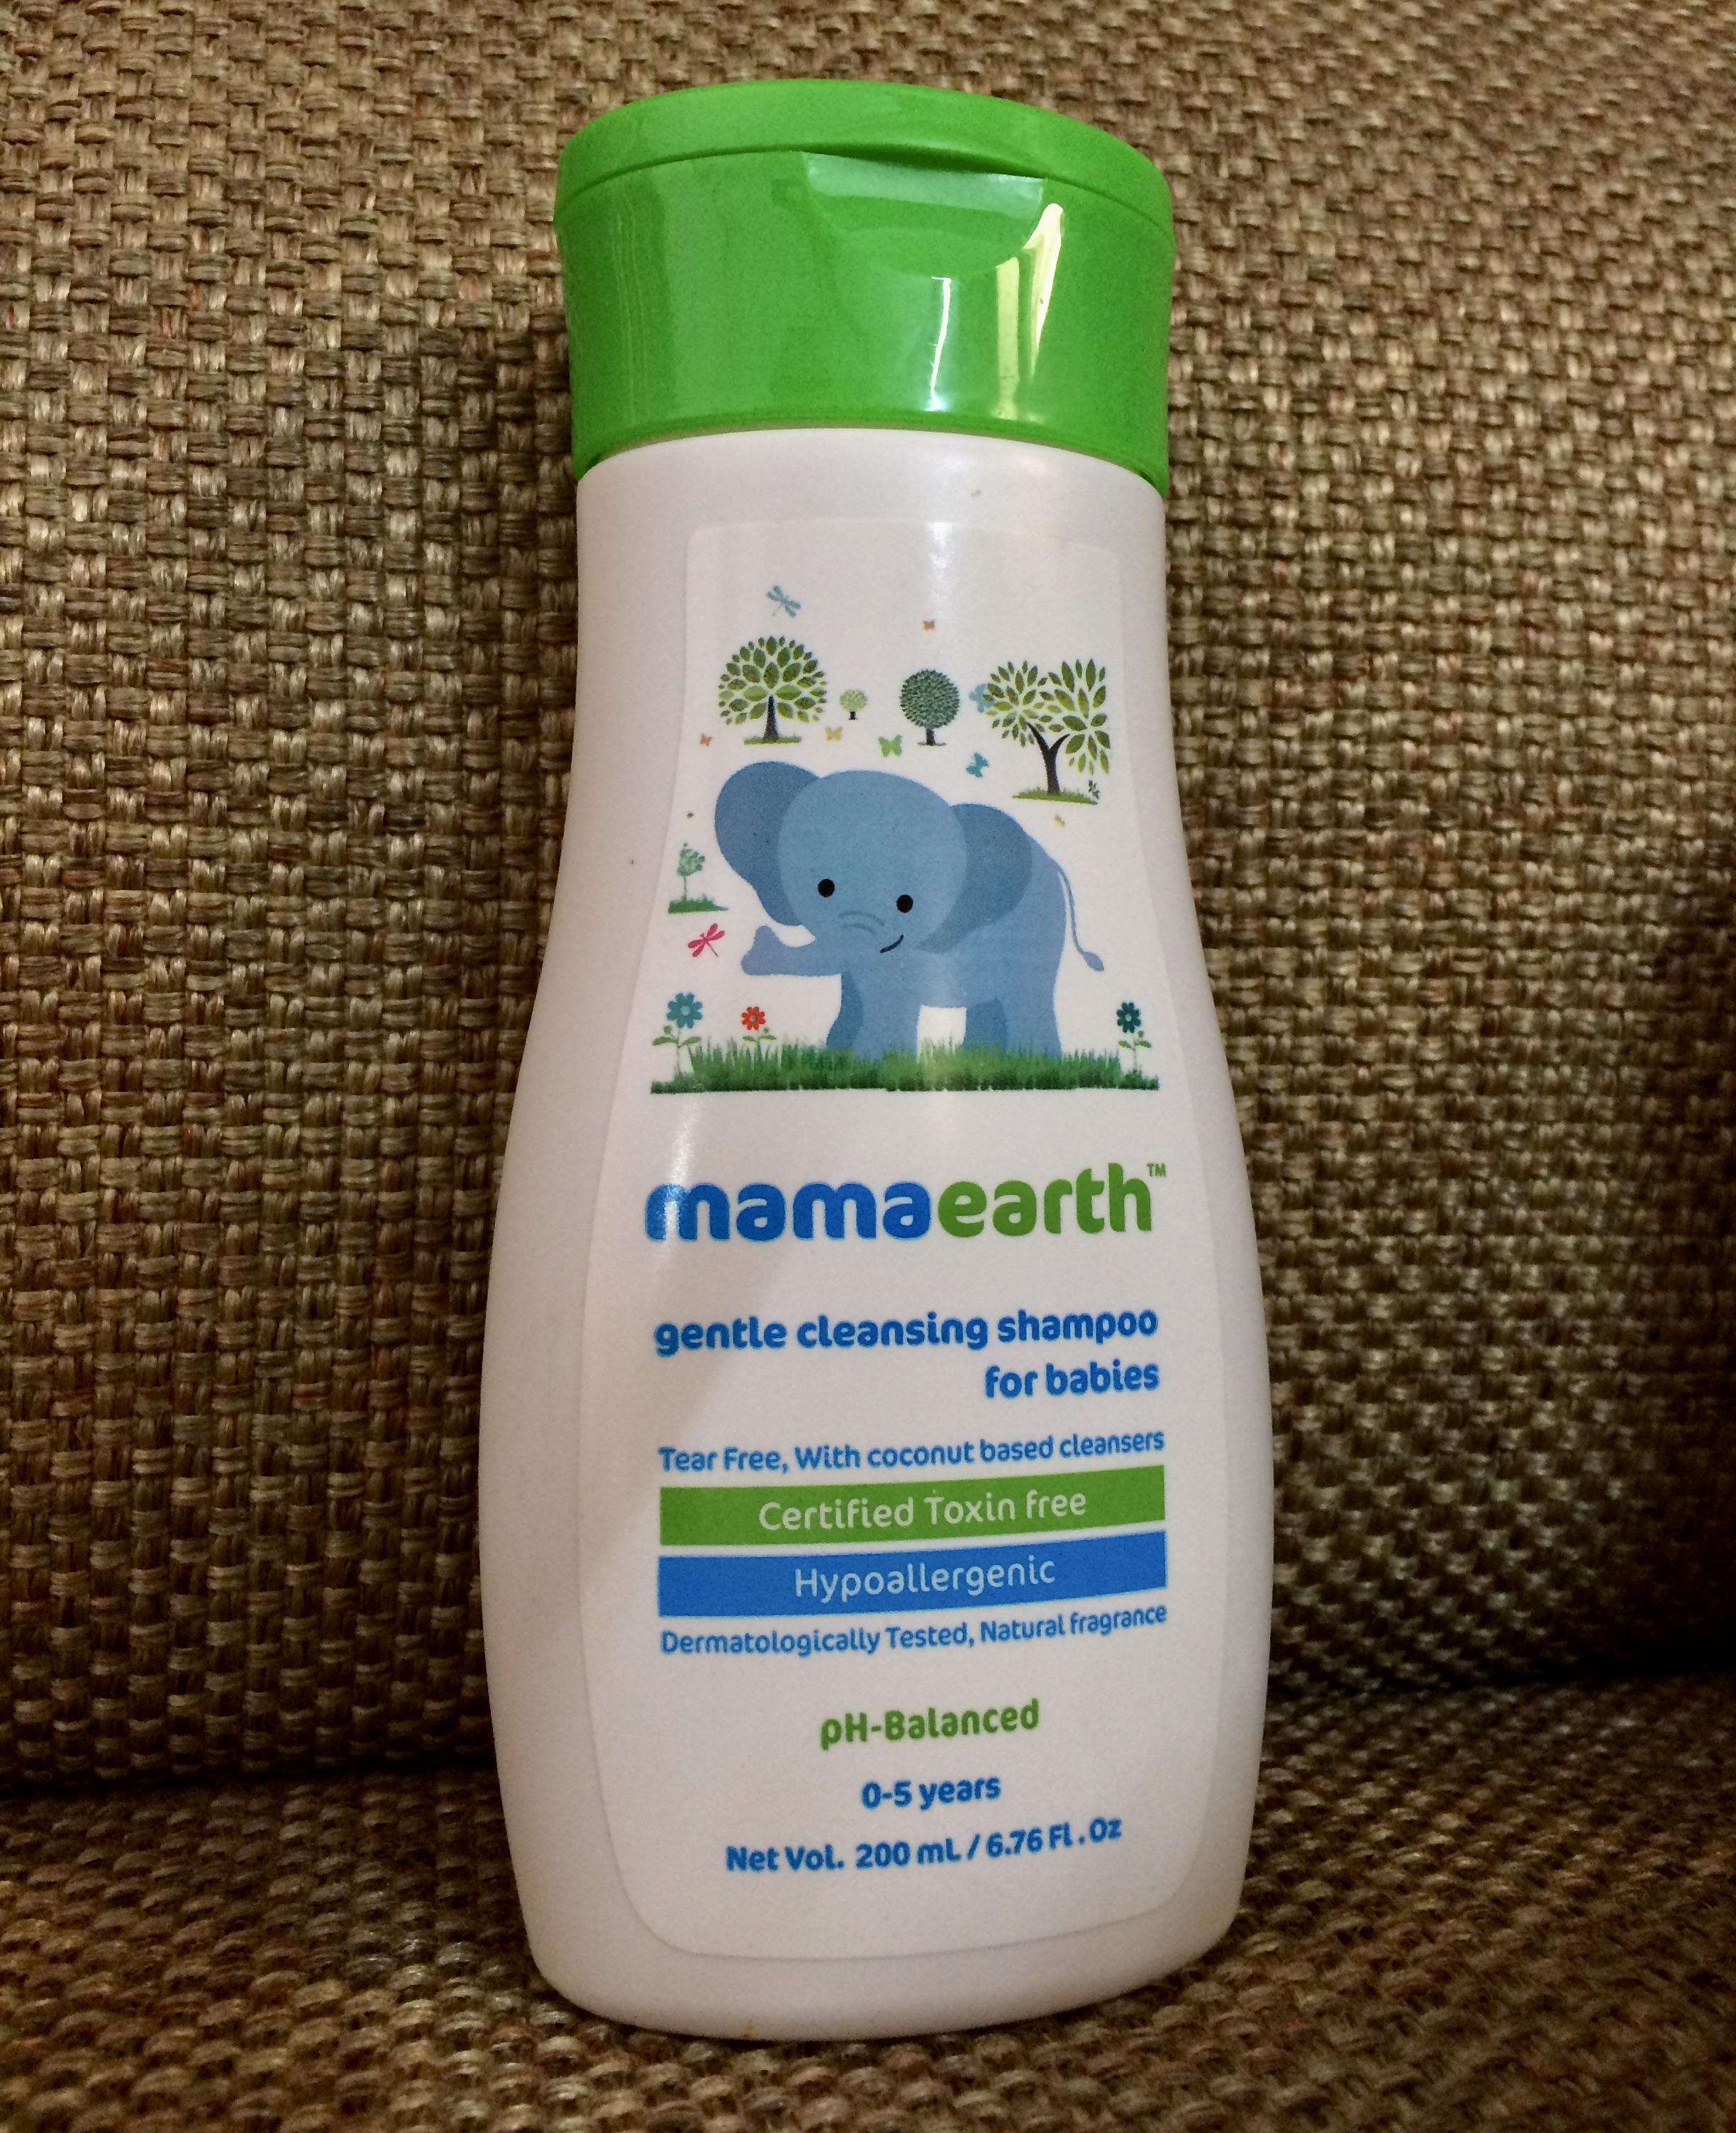 Mamaearth Gentle Cleansing Shampoo For Babies-Good choice-By deepashree14